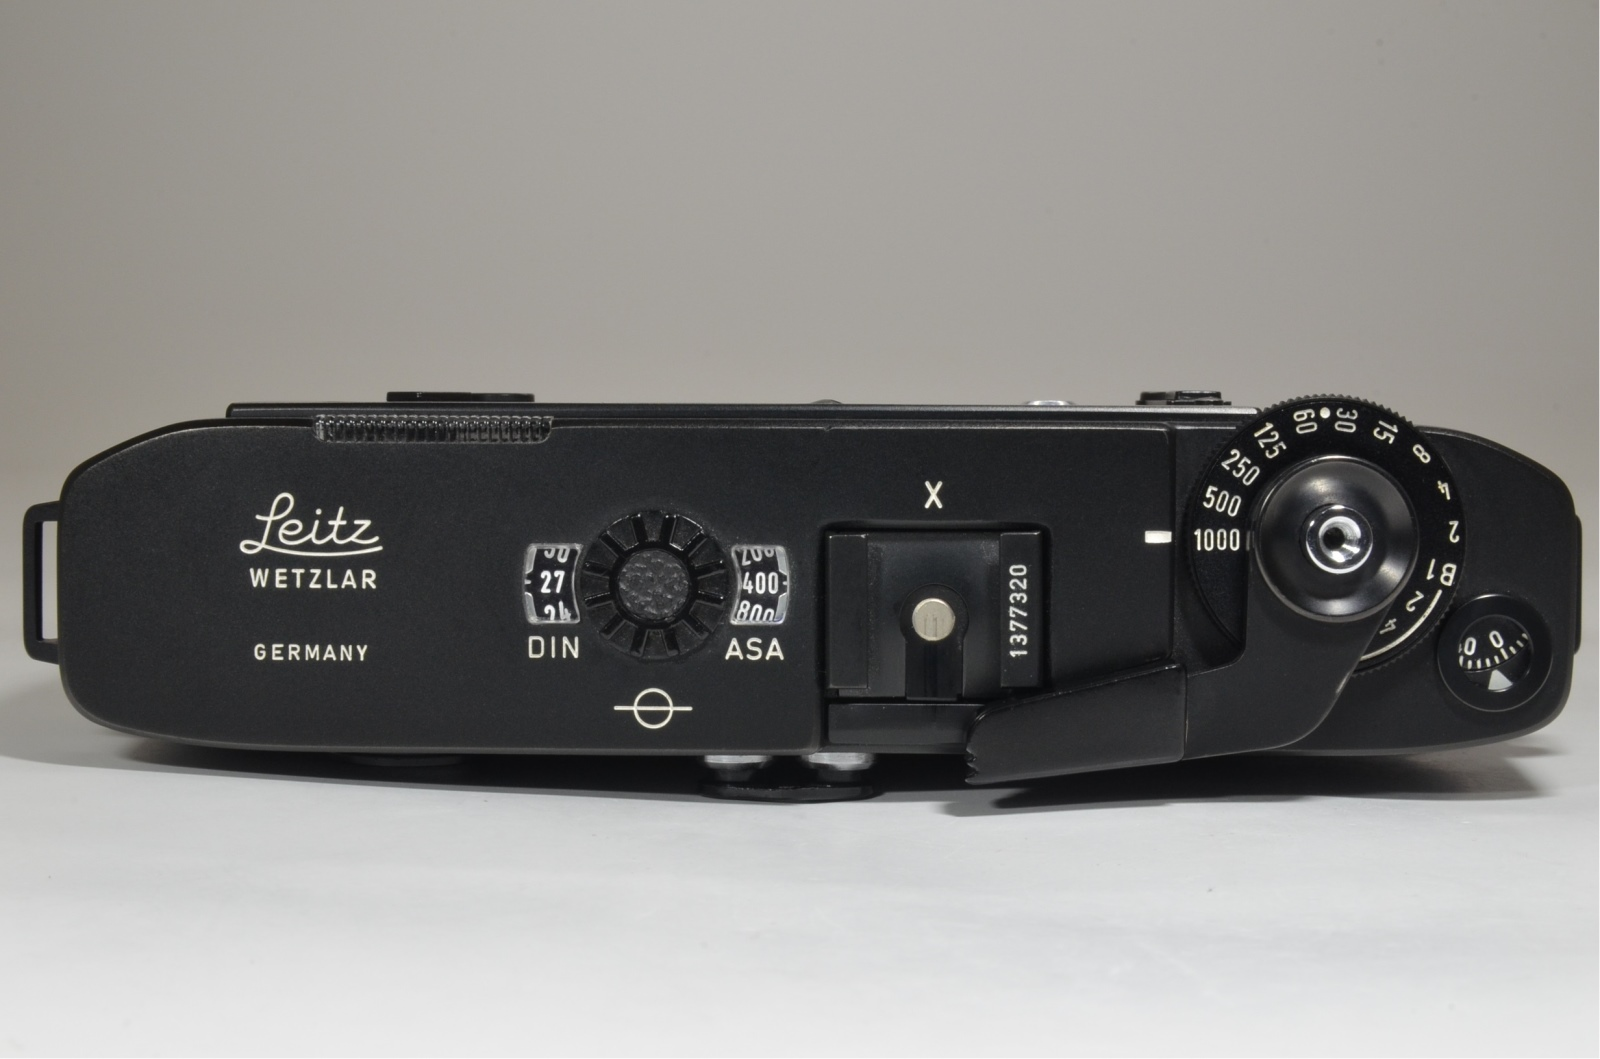 leica m5 black 3 lug serial no.1377320 year 1973 from japan